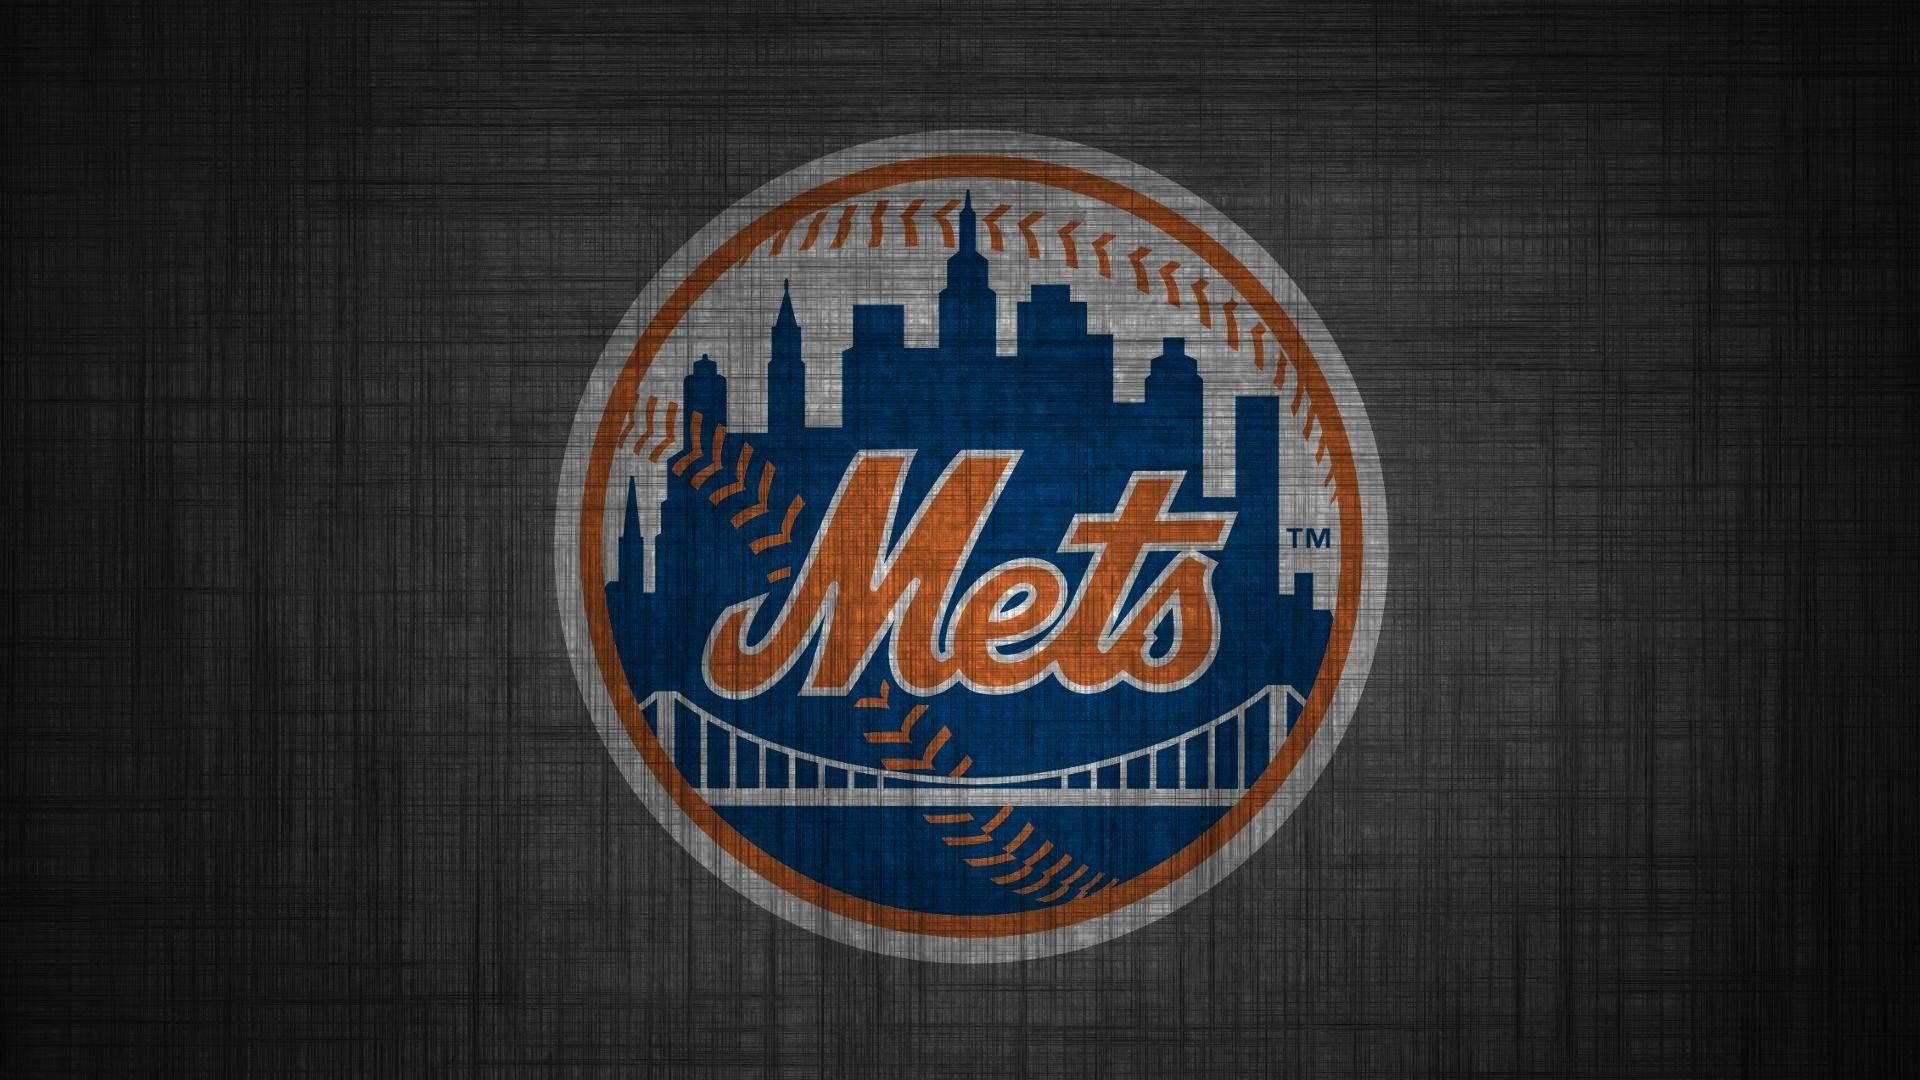 The Perfect Mets Wallpaper Design For Your Home Or Office